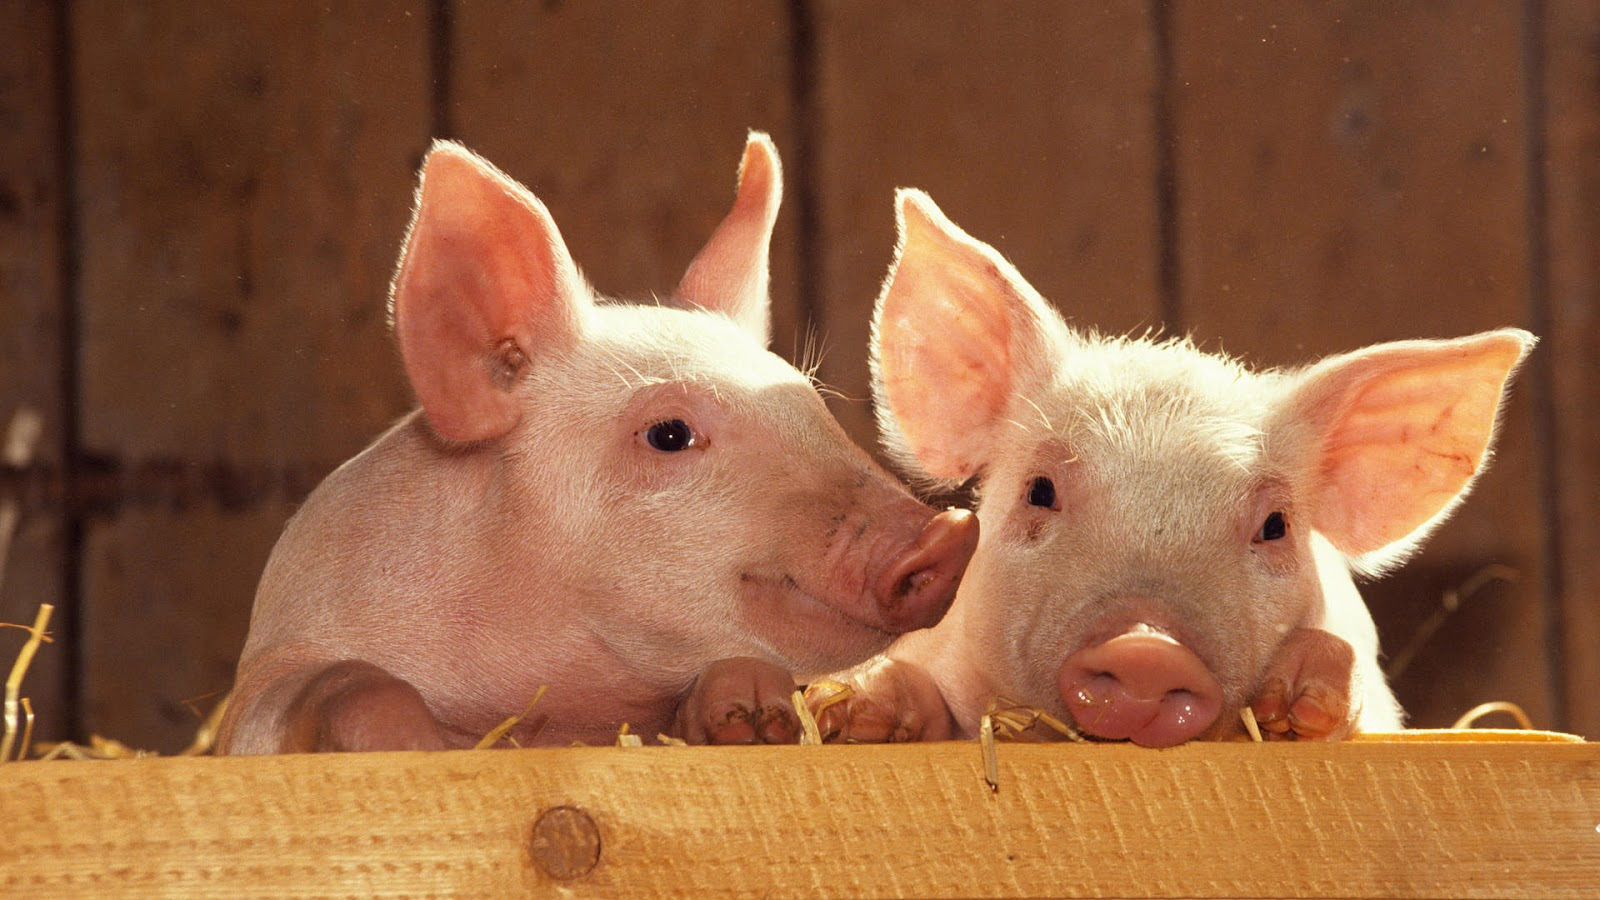 HD animal wallpaper of two cute looking pigs HD pig wallpaper 1600x900